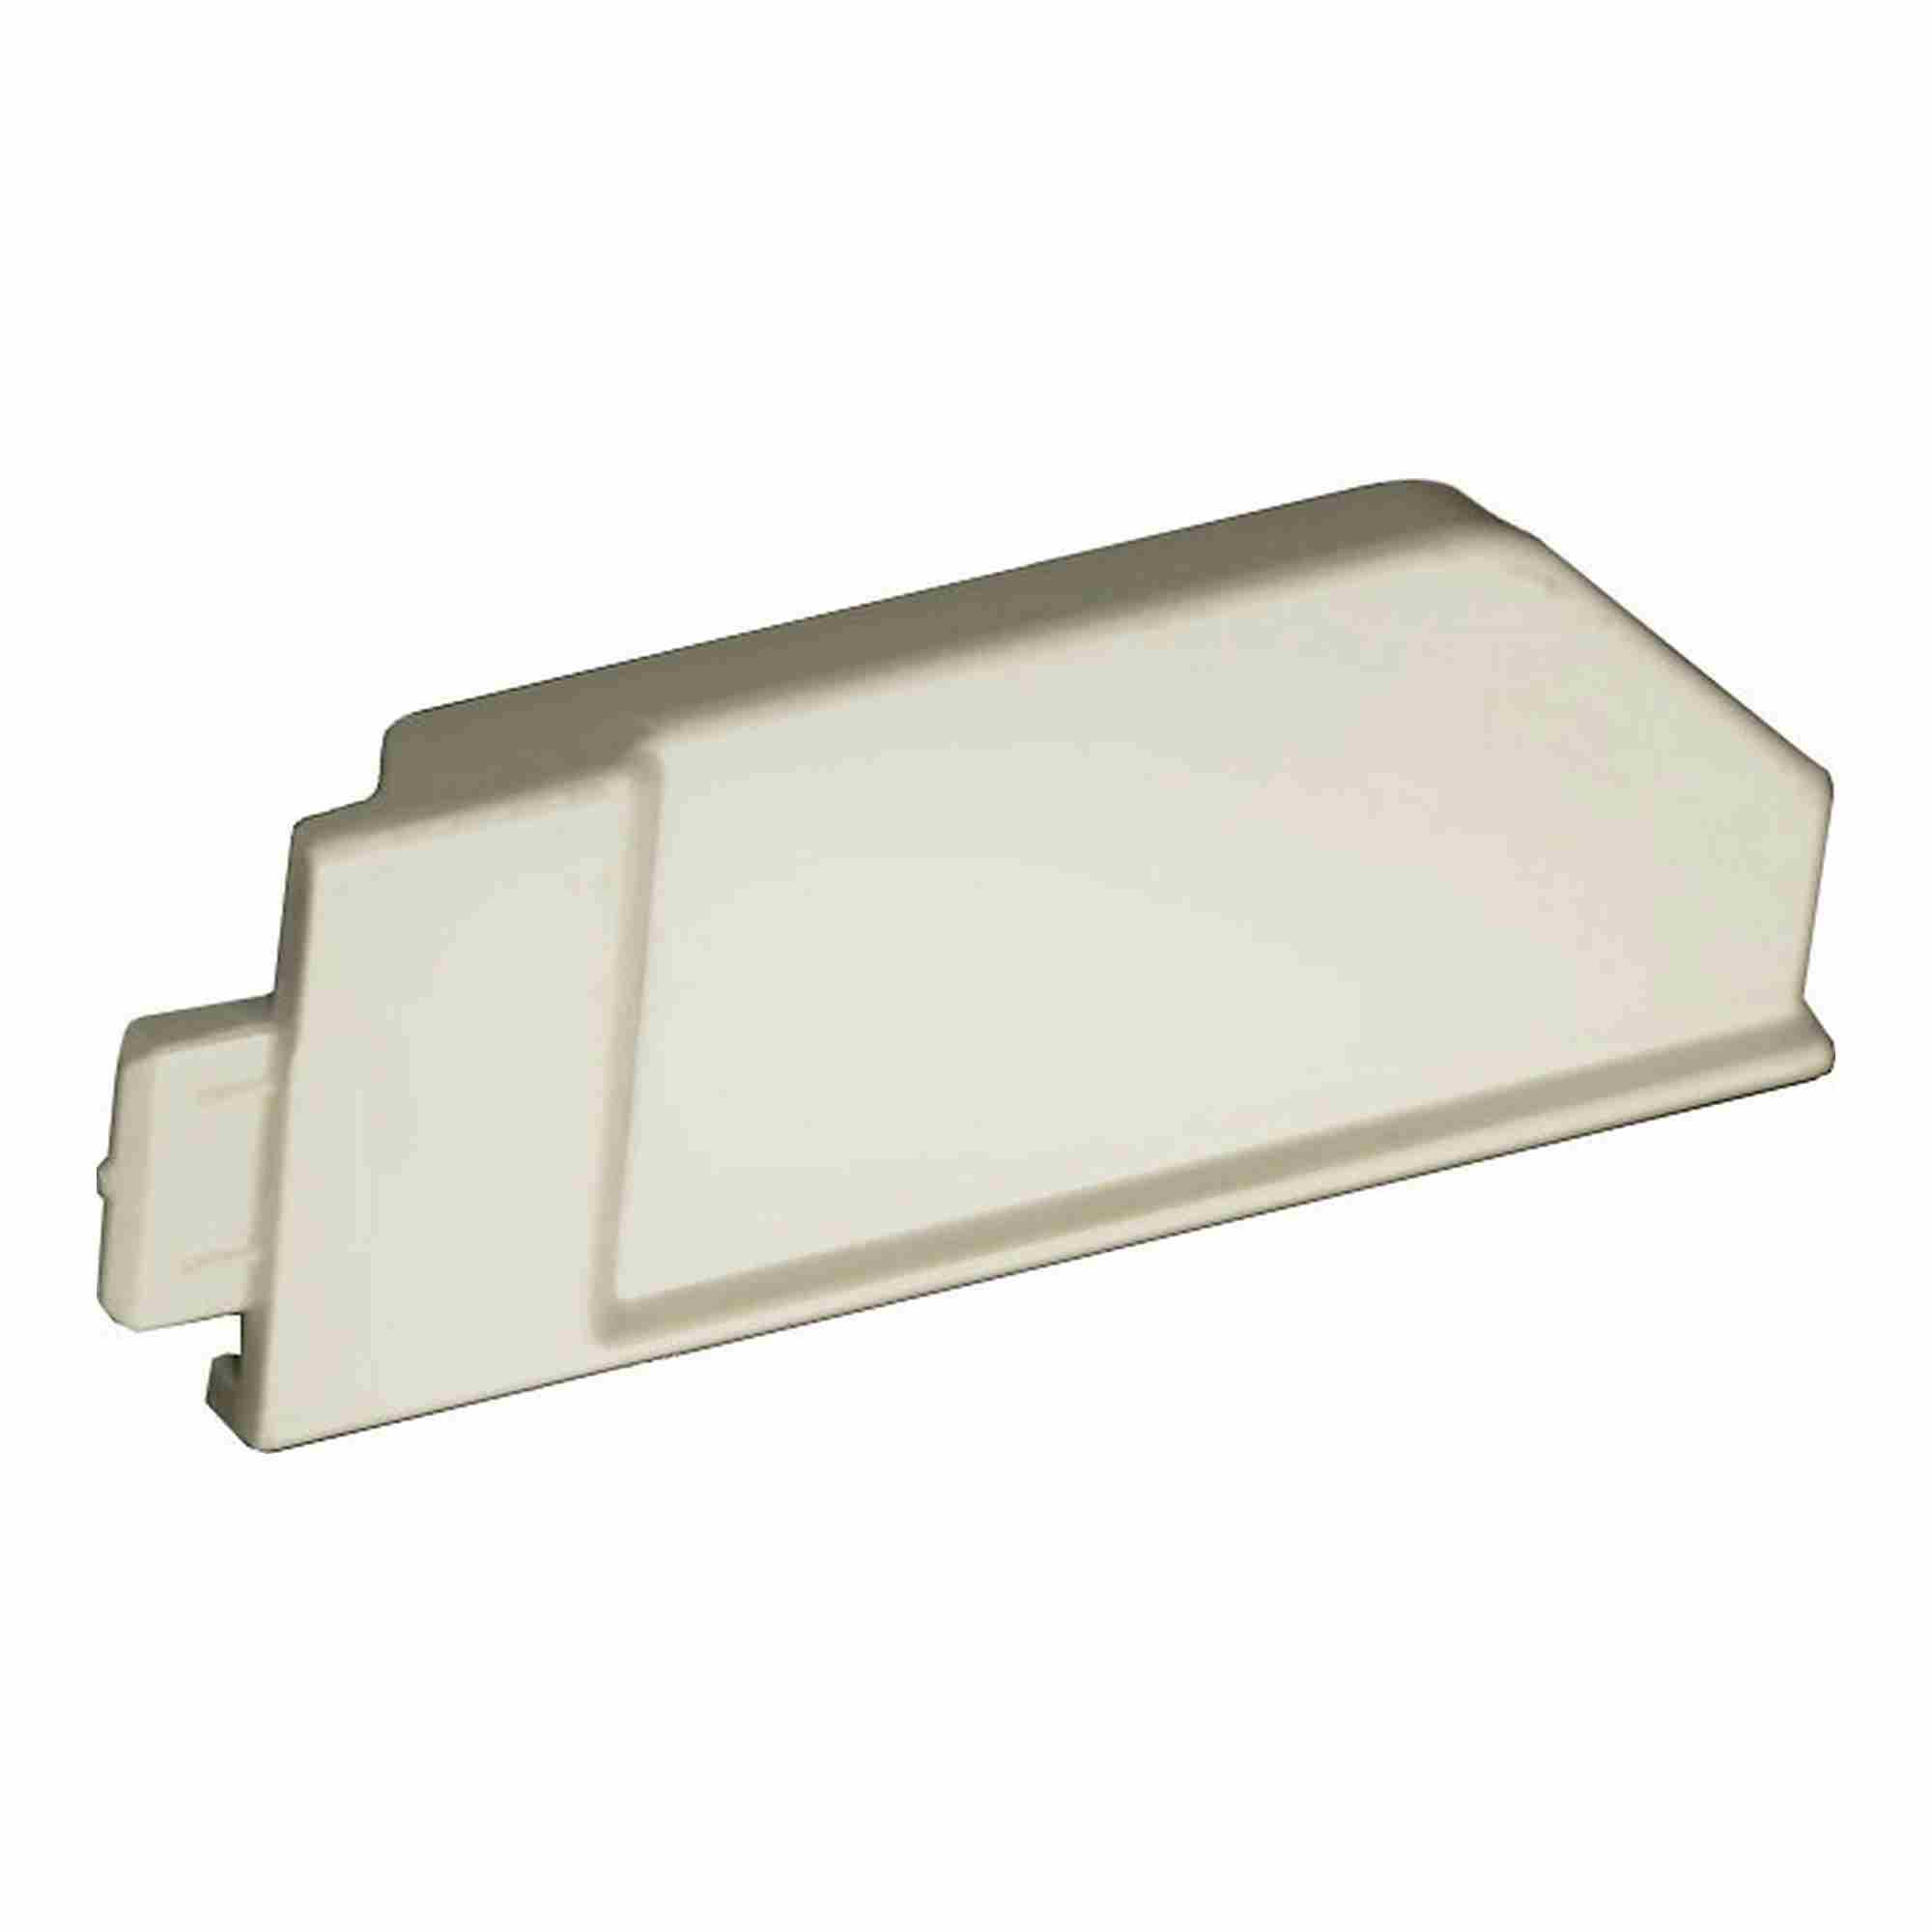 2223285 For Whirlpool Refrigerator Crisper Pan Cap by Whirlpool